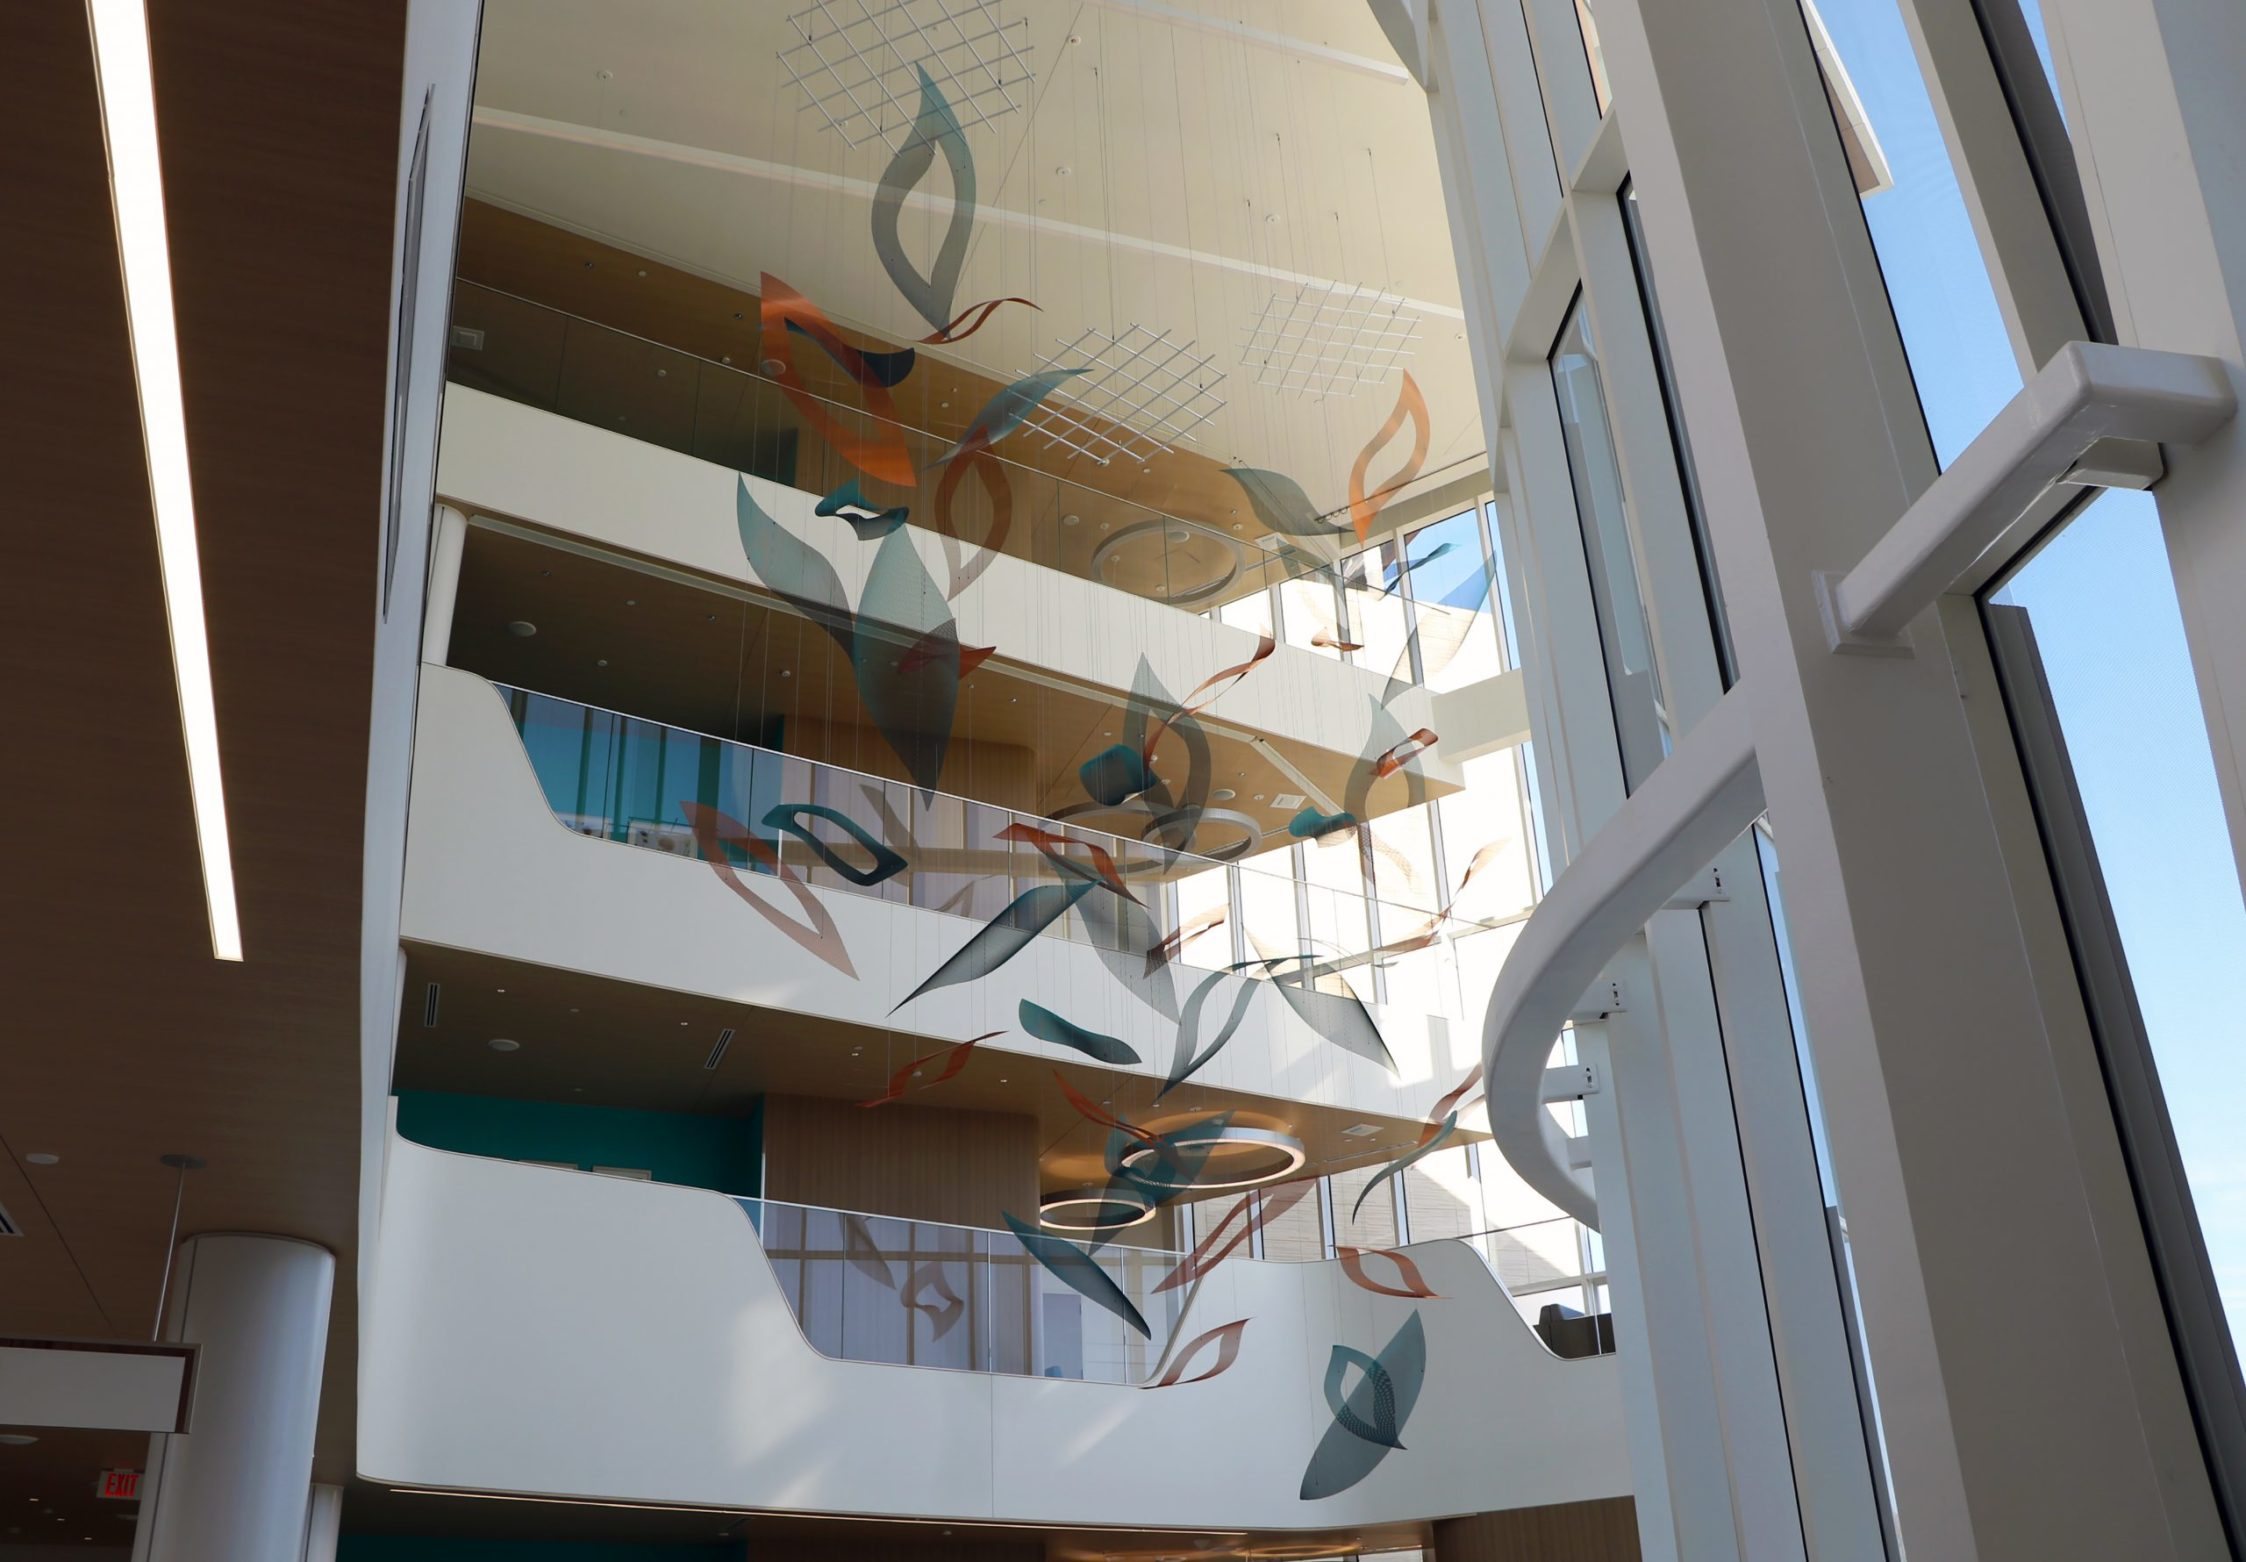 Talley Fisher's atrium sculpture, Nature's Symphony, as seen from the lobby area.